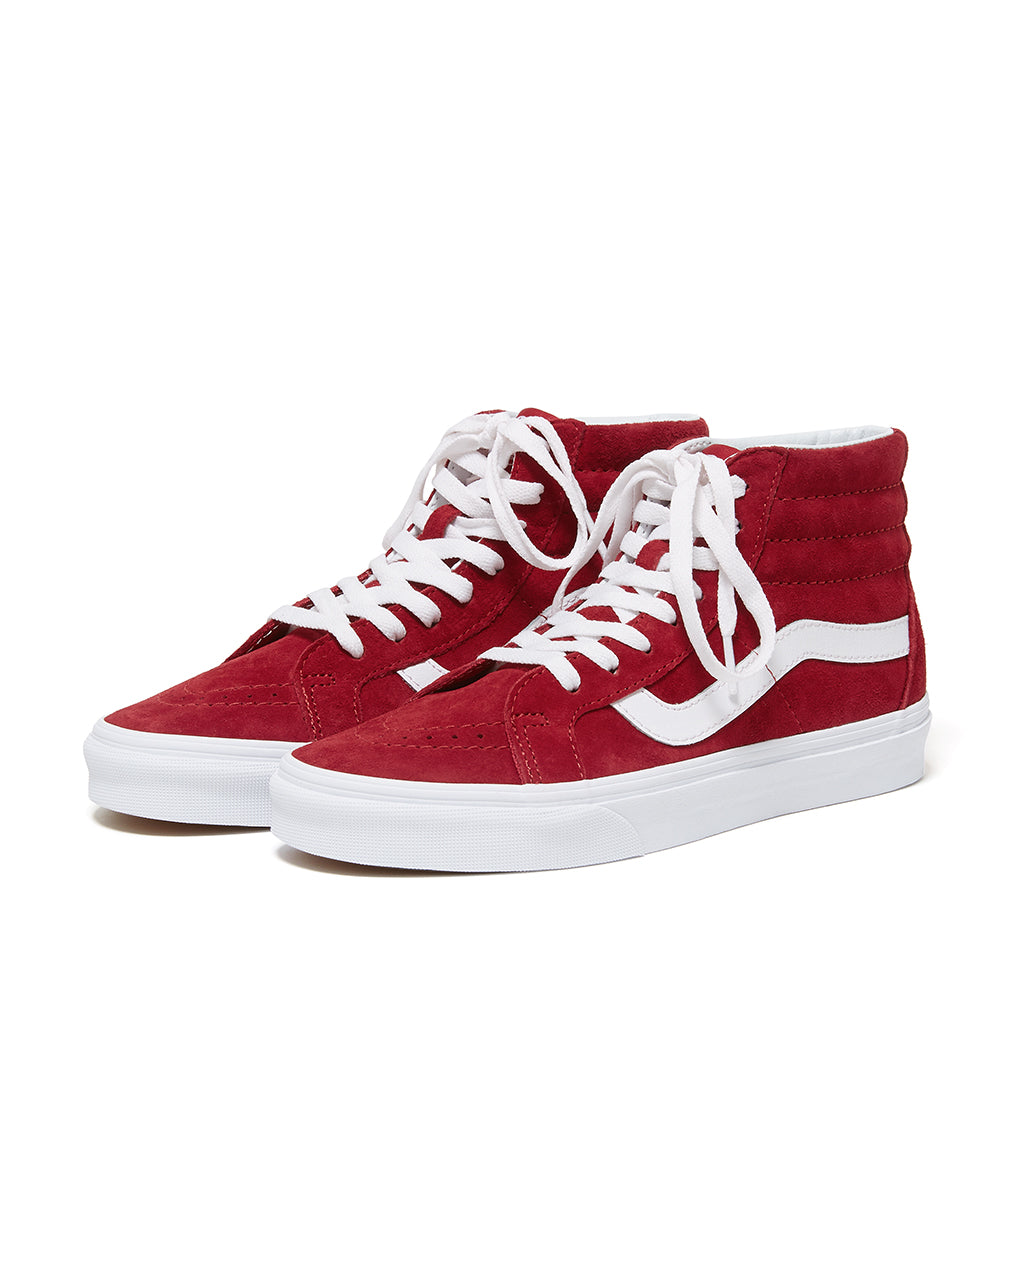 55c68bc07d Sk8-Hi - Red Suede by vans - shoes - ban.do